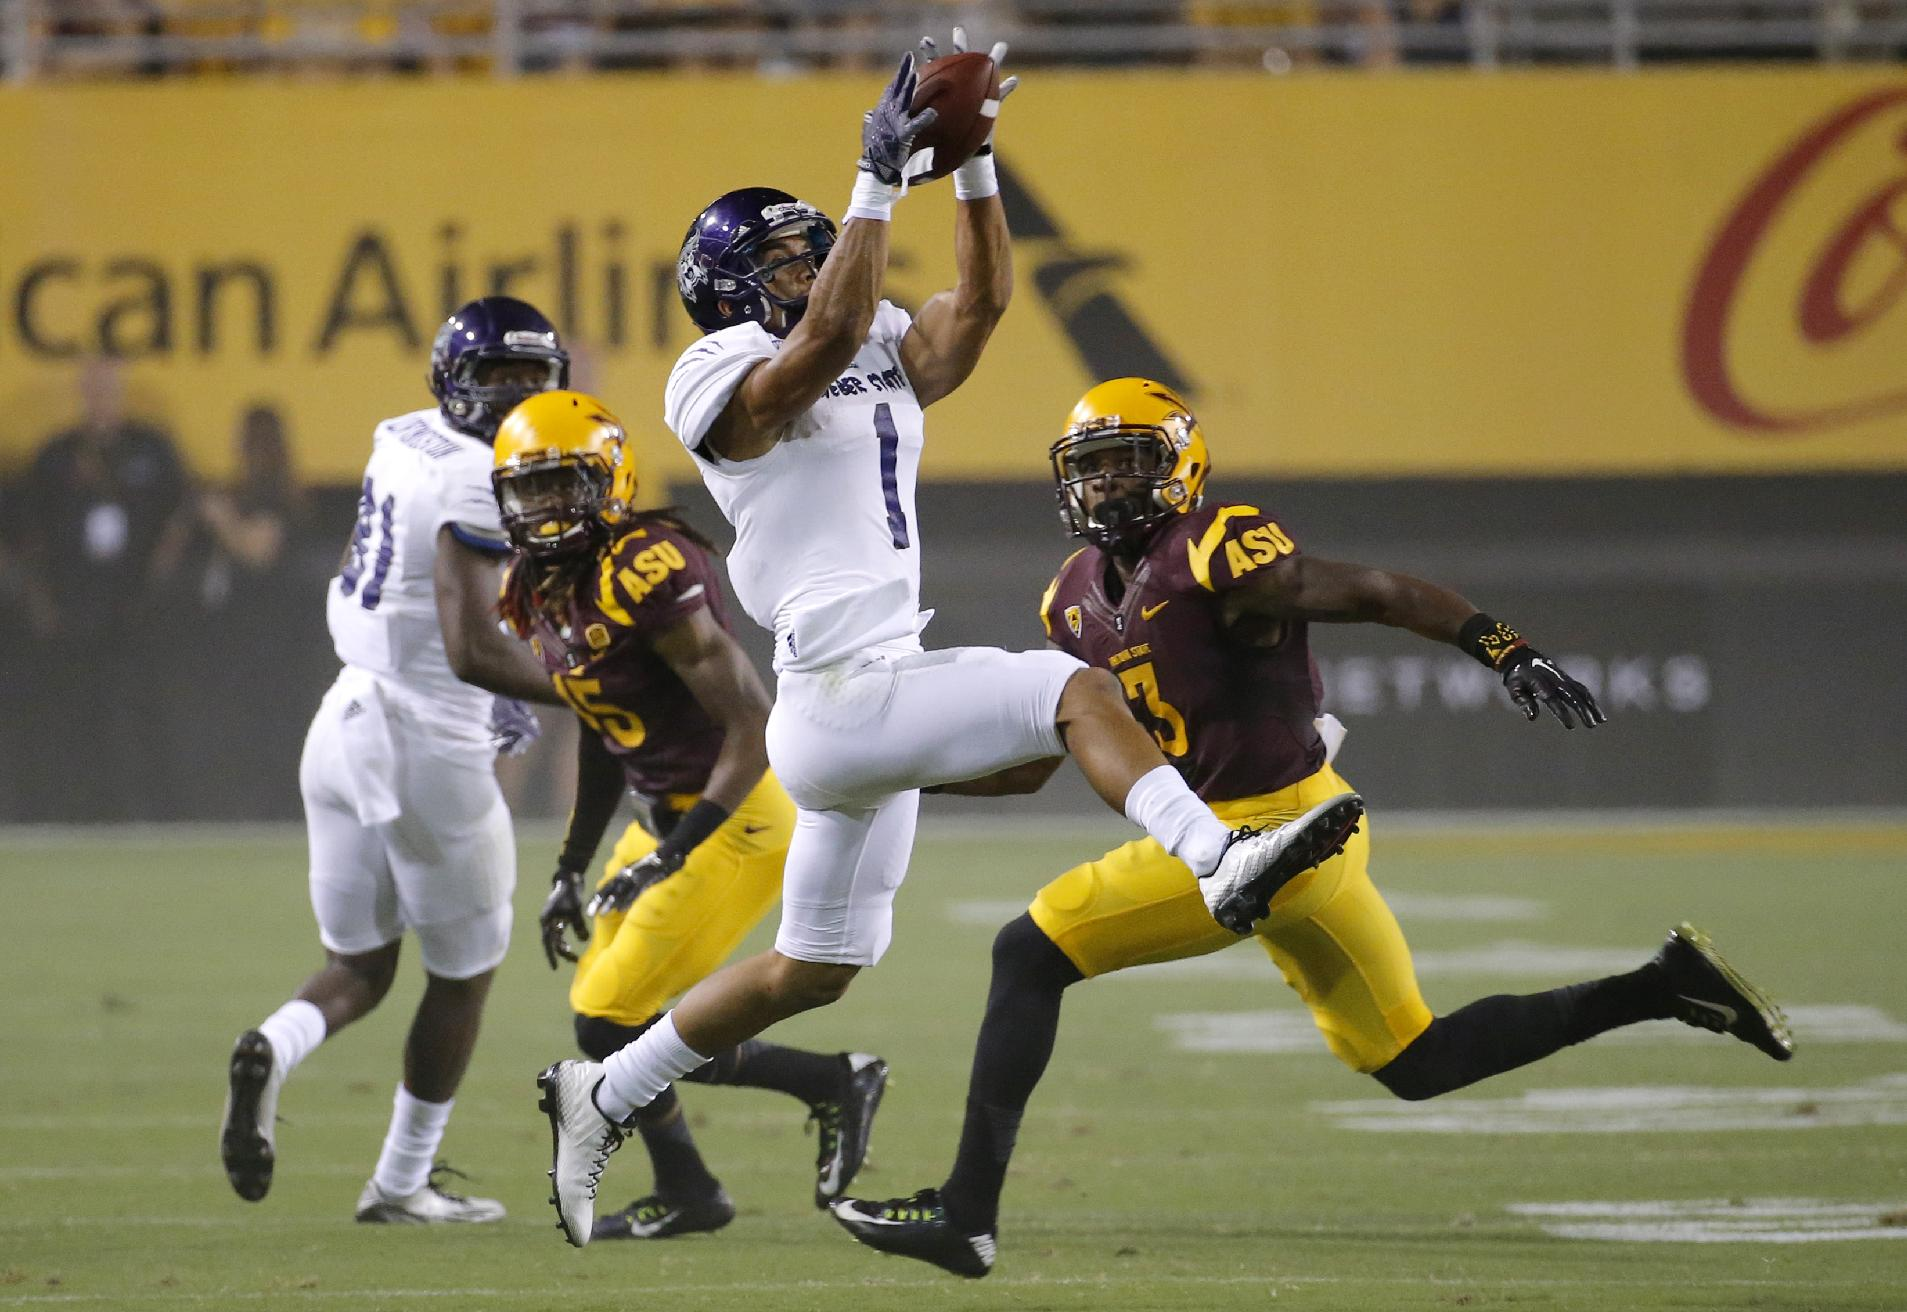 Weber State wide receiver Shaydon Kehano makes a catch as Arizona State defensive back Damarious Randall (3) watches during the first half of an NCAA college football game, Thursday, Aug. 28, 2014, in Tempe, Ariz